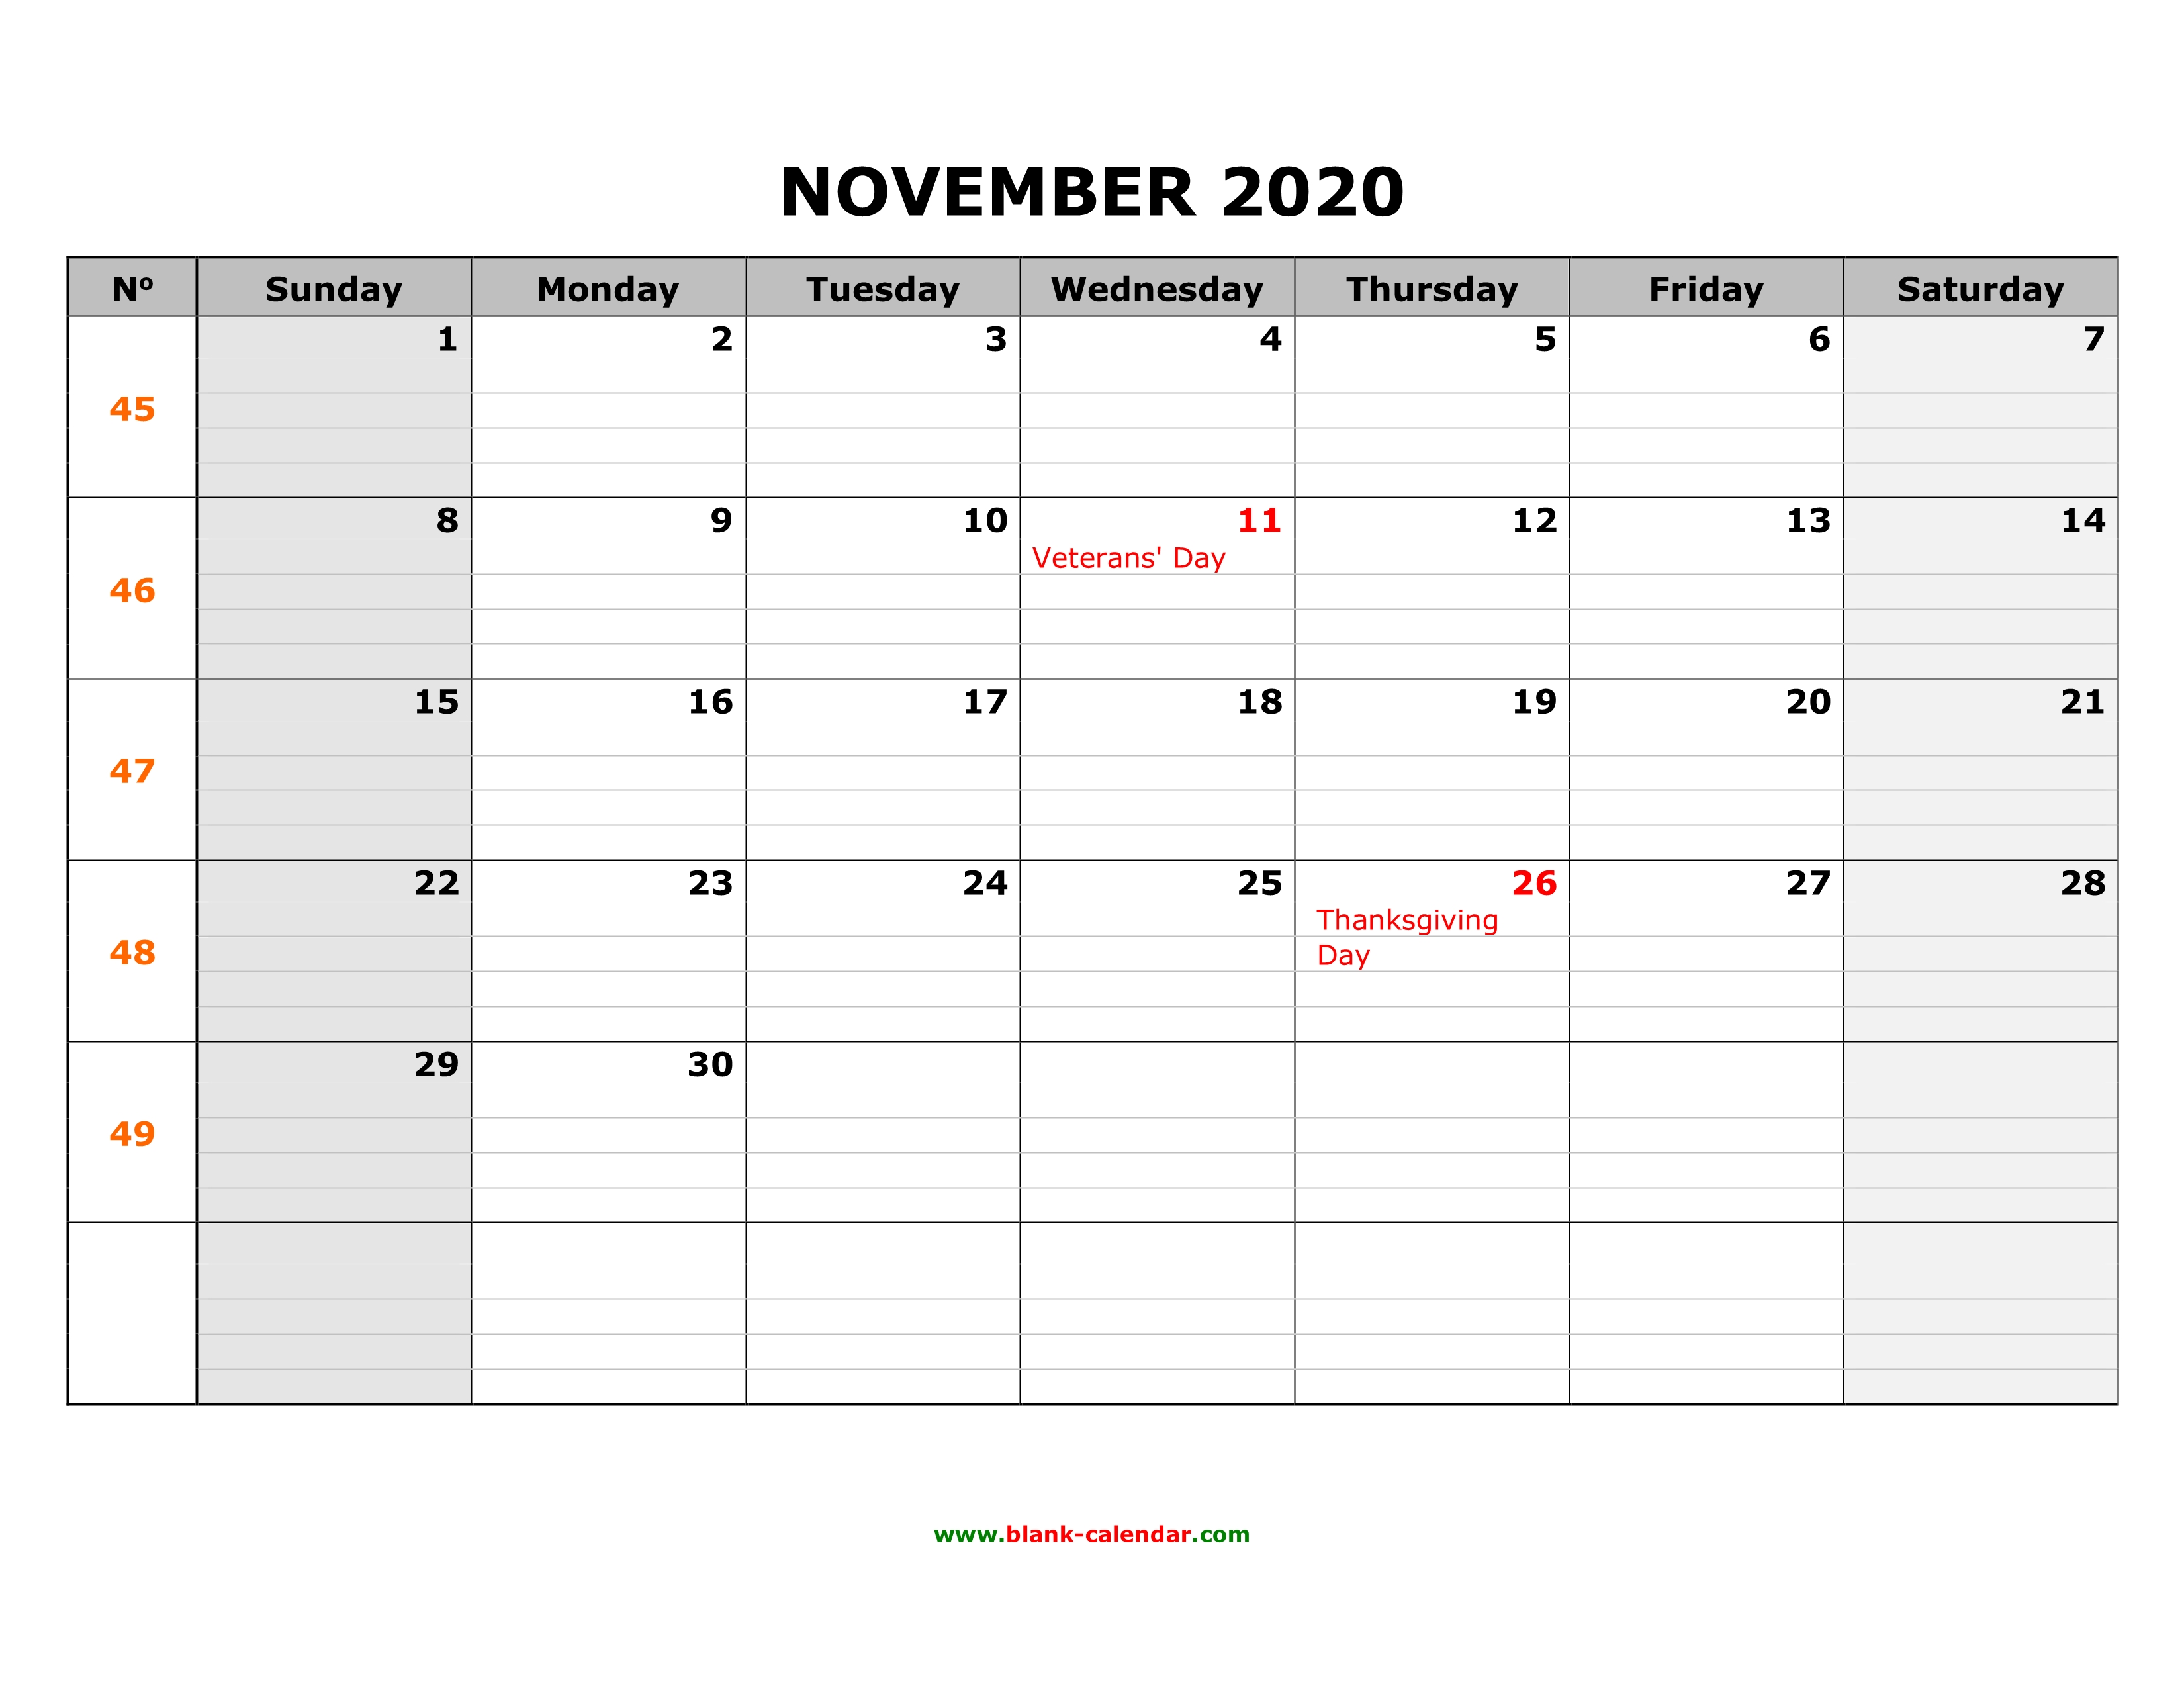 2020 Calendar Thanksgiving Free Download Printable November 2020 Calendar, large box grid